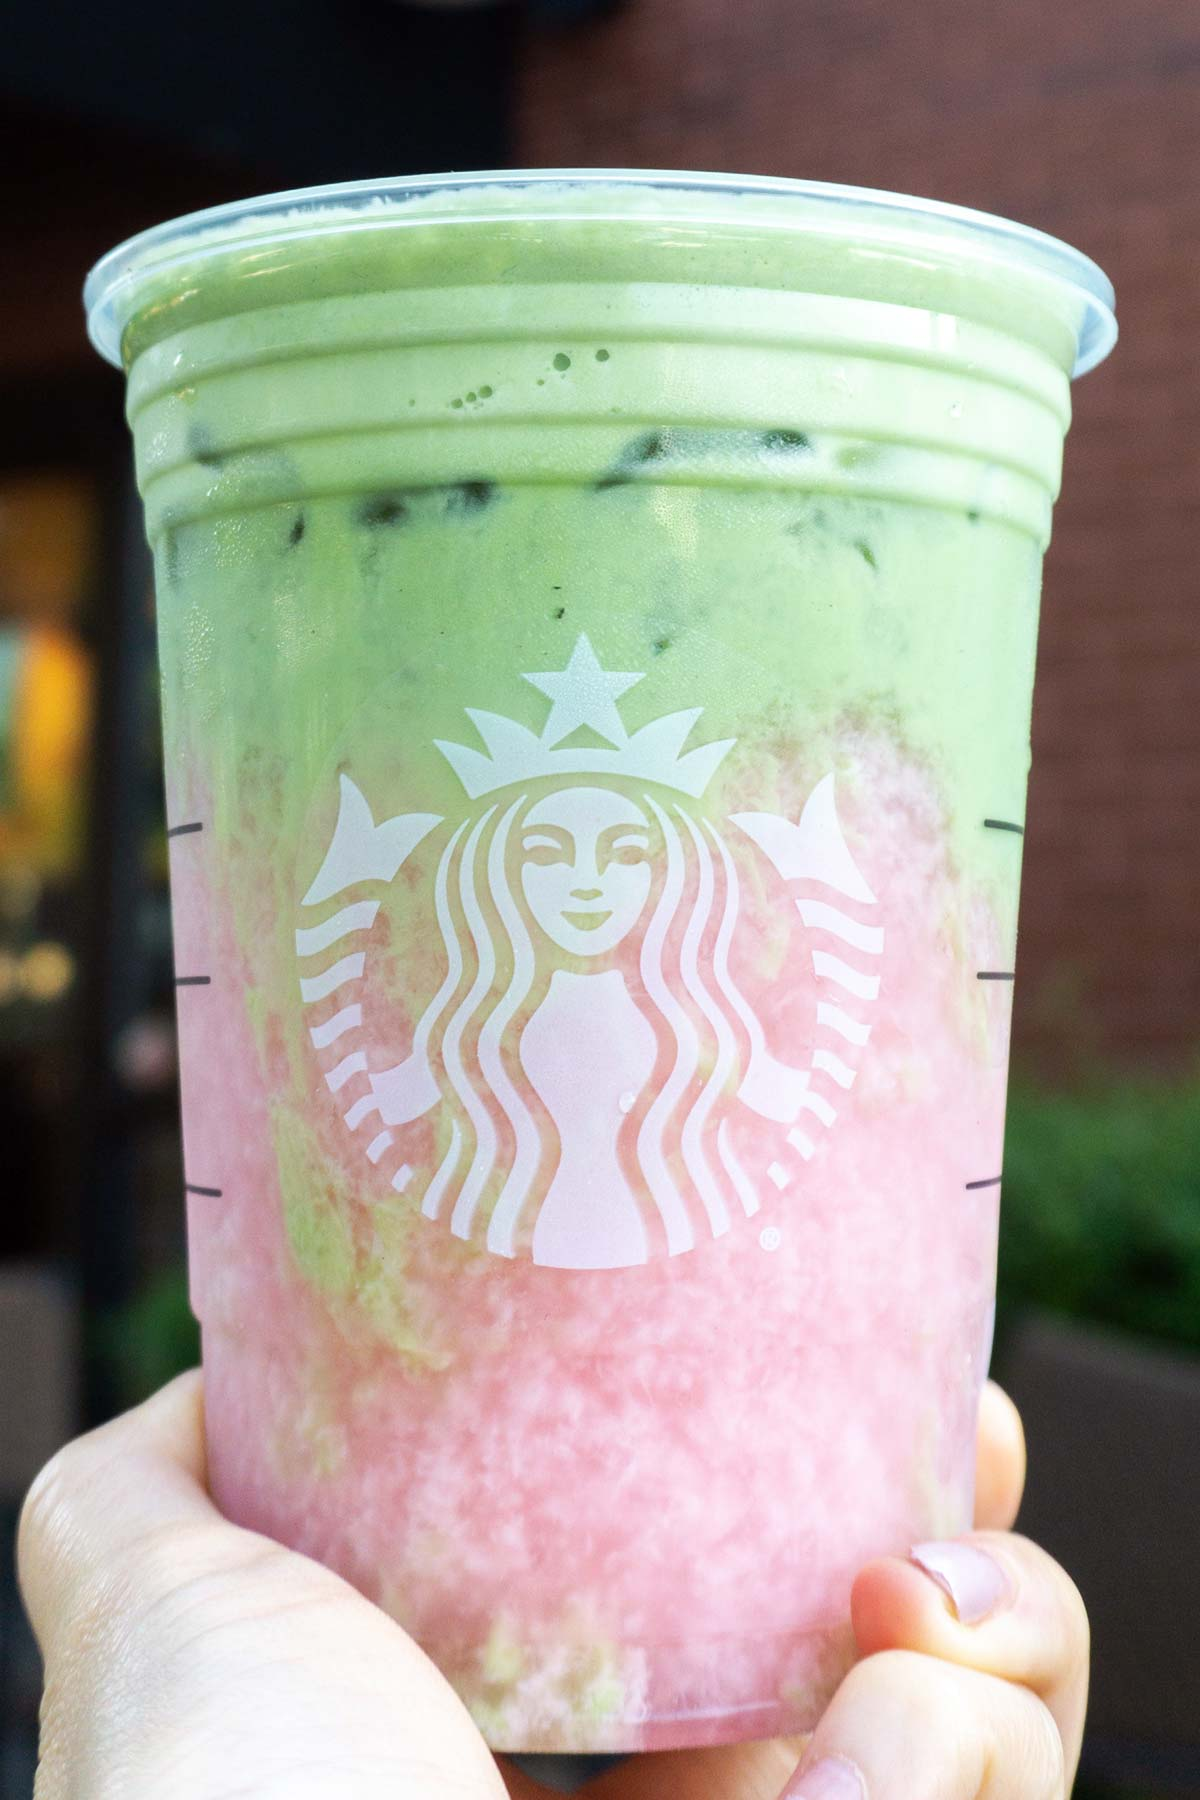 Holding a Starbucks cup with TikTok Matcha Pink Drink.